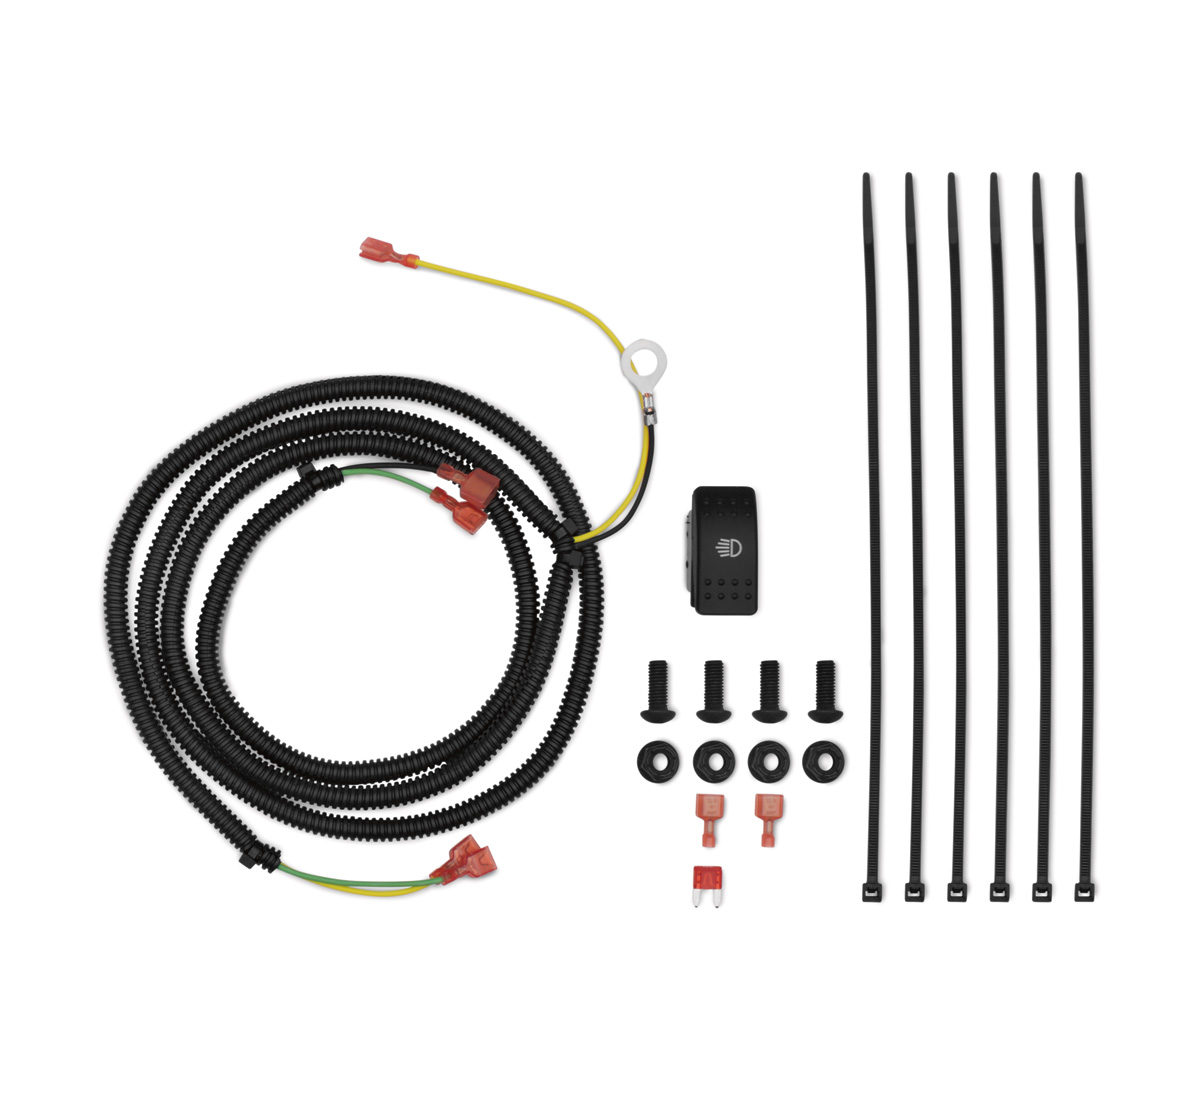 Mule Pro Wiring Diagram Schemes Kawasaki 2510 Side X Led Lightbar Harness Kit Rh Com 2015 Fxt